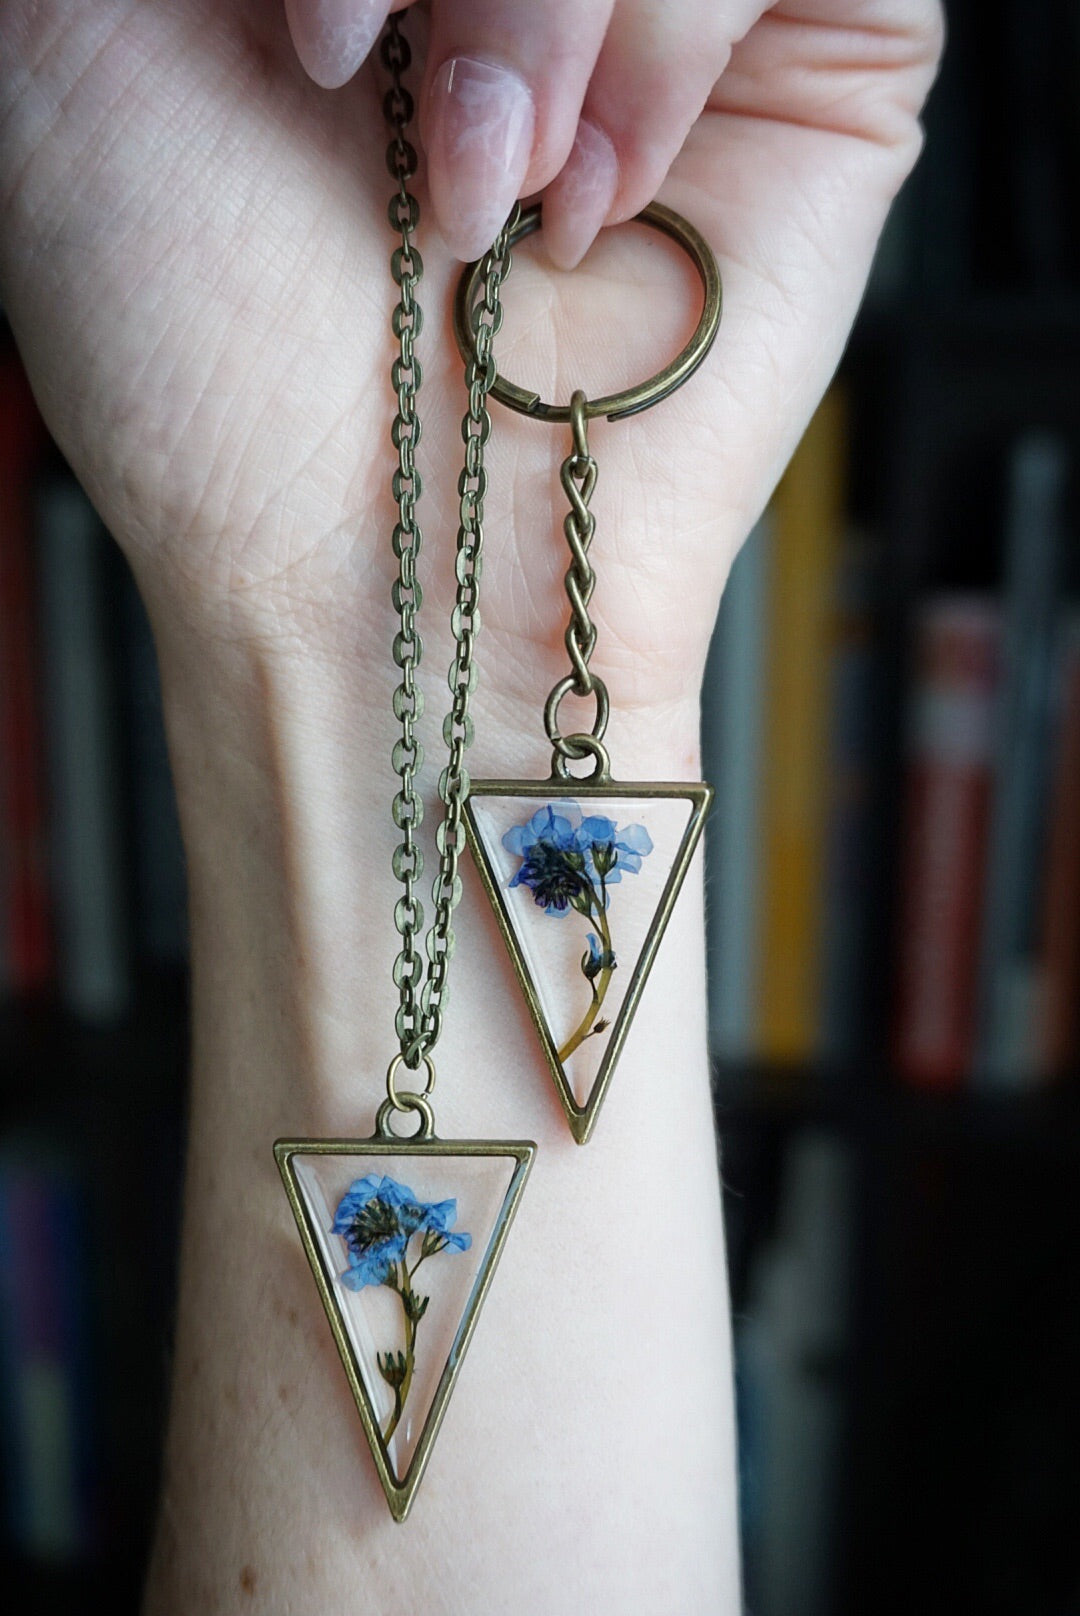 Forget Me Not Triangle Necklace or Key Chain